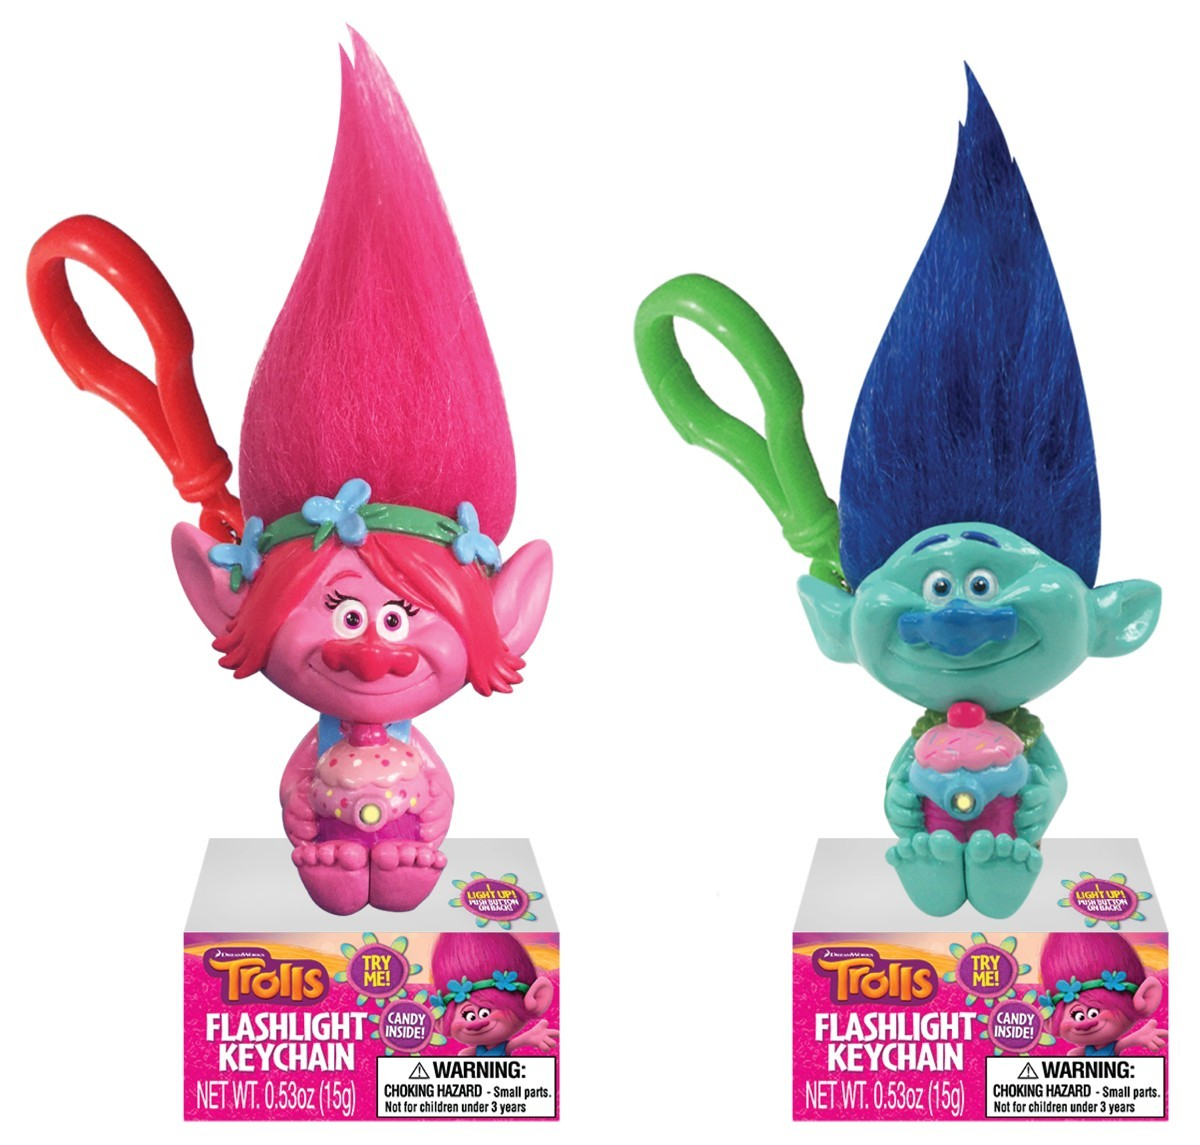 Dreamworks Trolls Character Flashlight